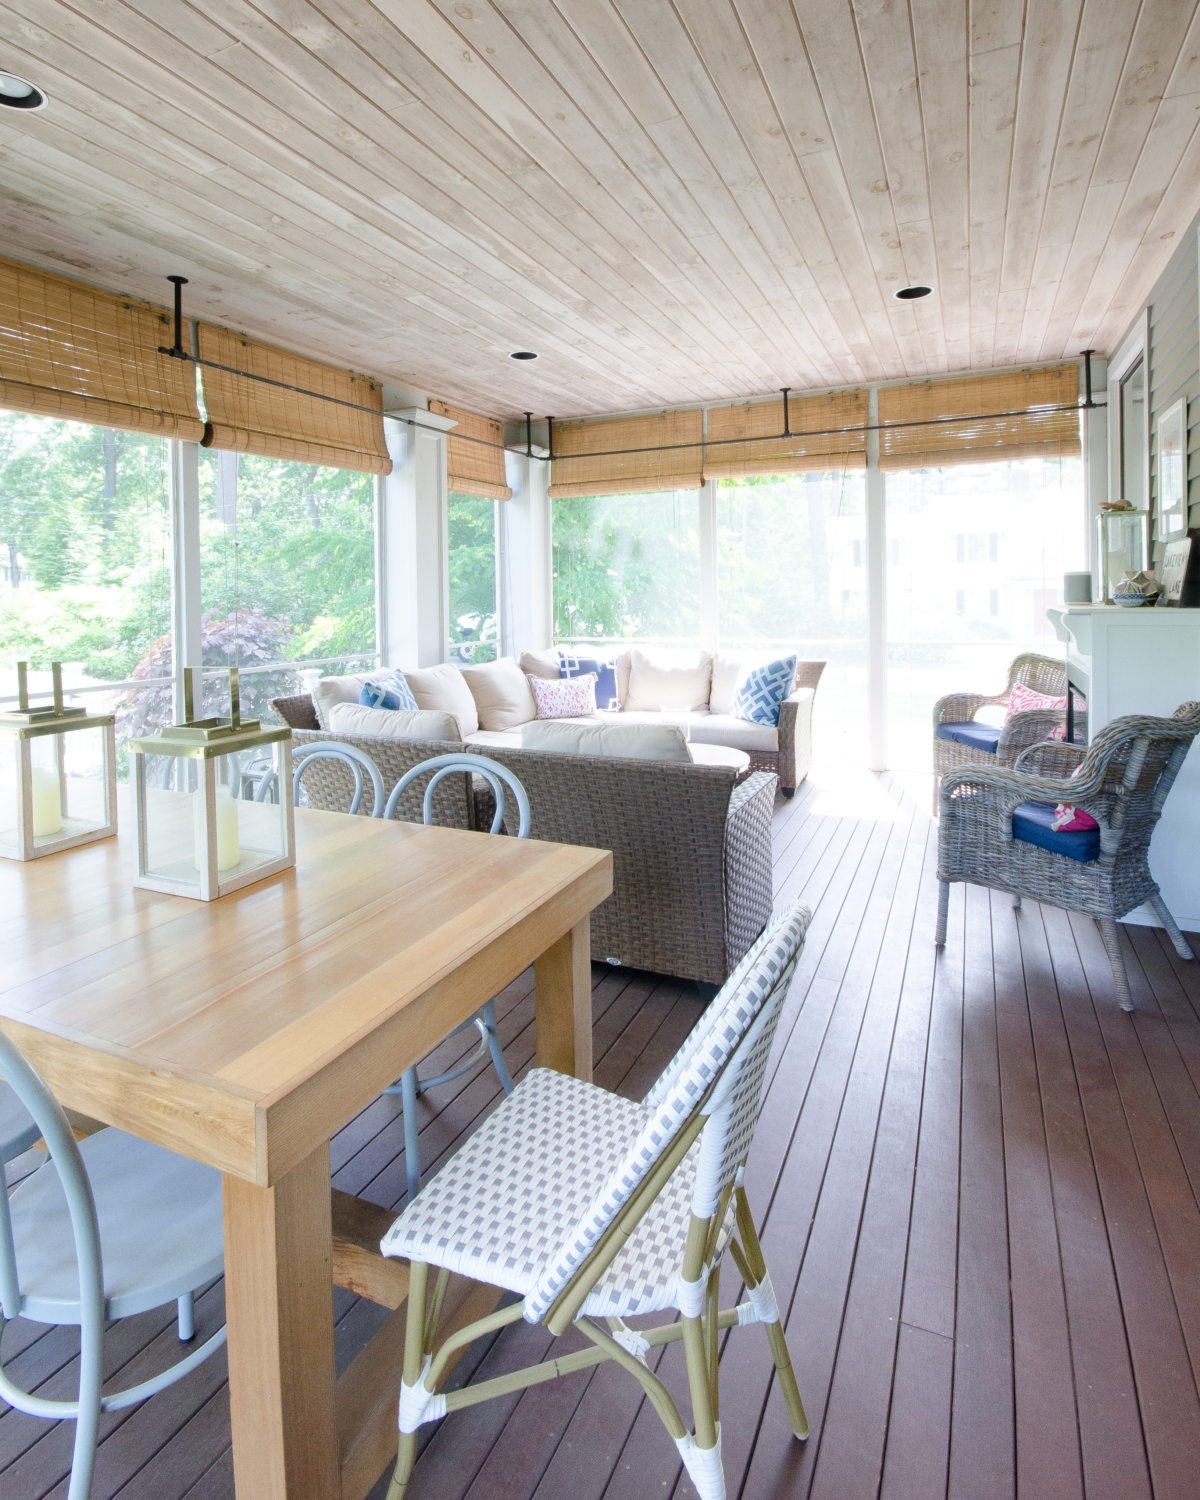 Screened porch space with dining and seating areas, a wood planked ceiling, and built in fireplace.